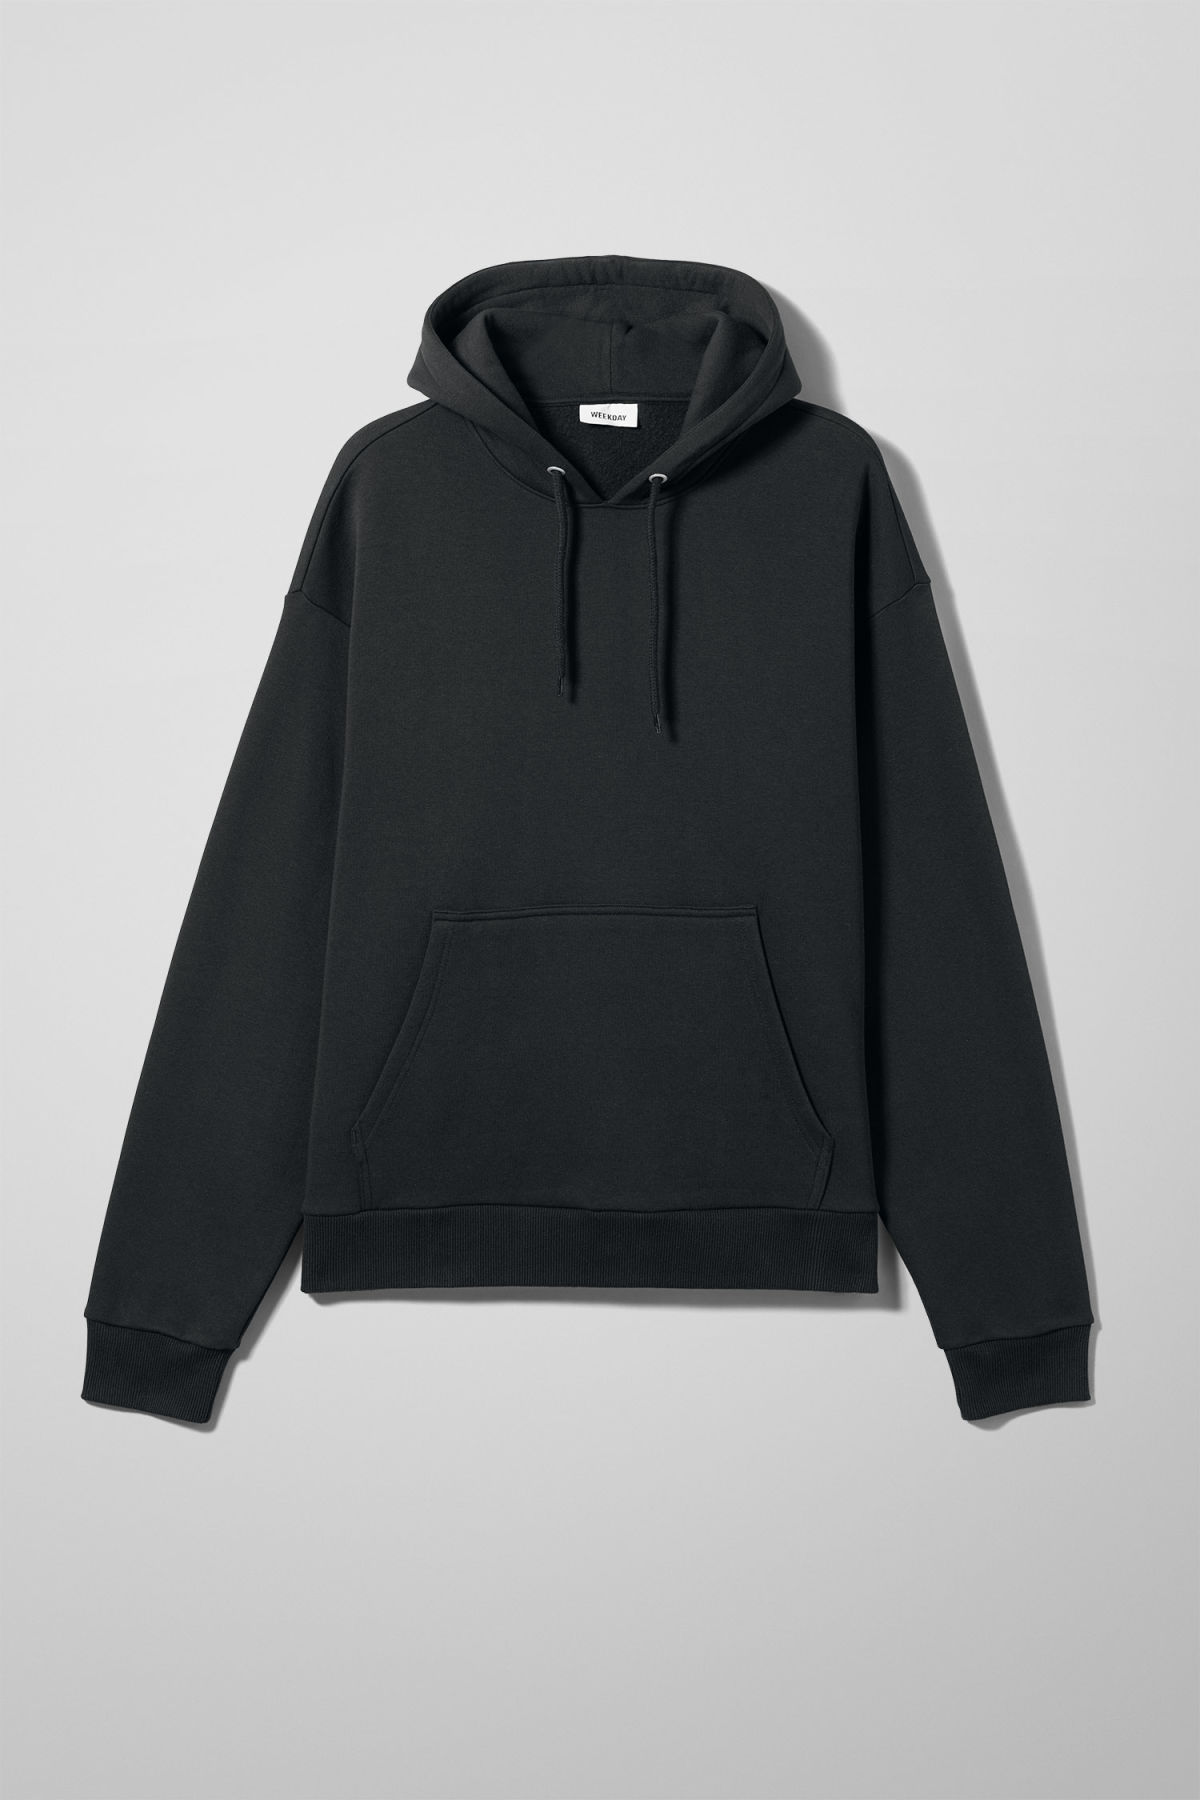 Big Hawk Hoodie - Black - Hoodies   sweatshirts - Weekday 4b71c8d4b